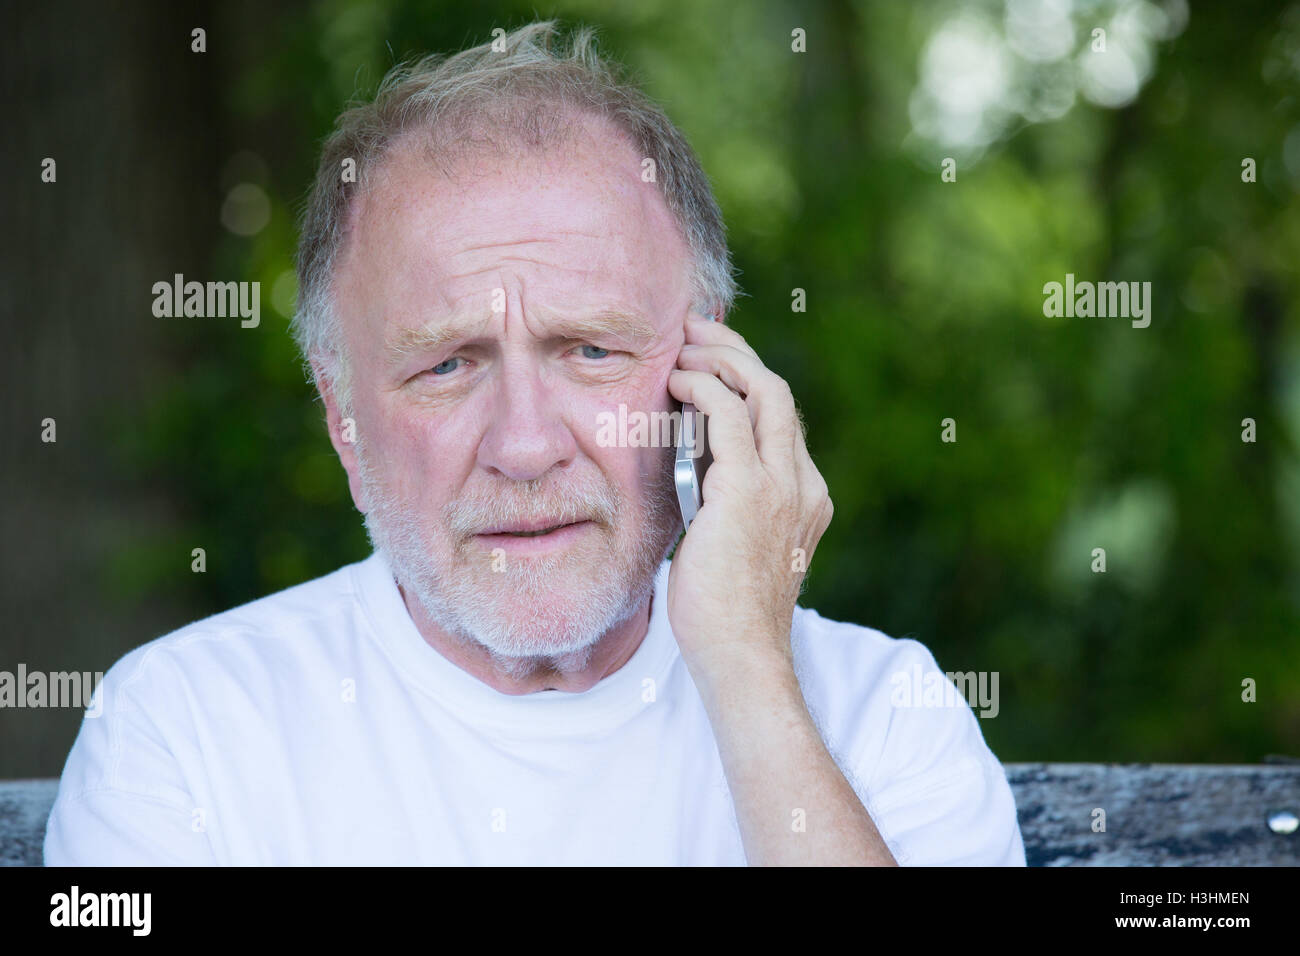 Closeup portrait, senior mature man in white t-shirt sitting on bench, having serious conversation on cell phone - Stock Image